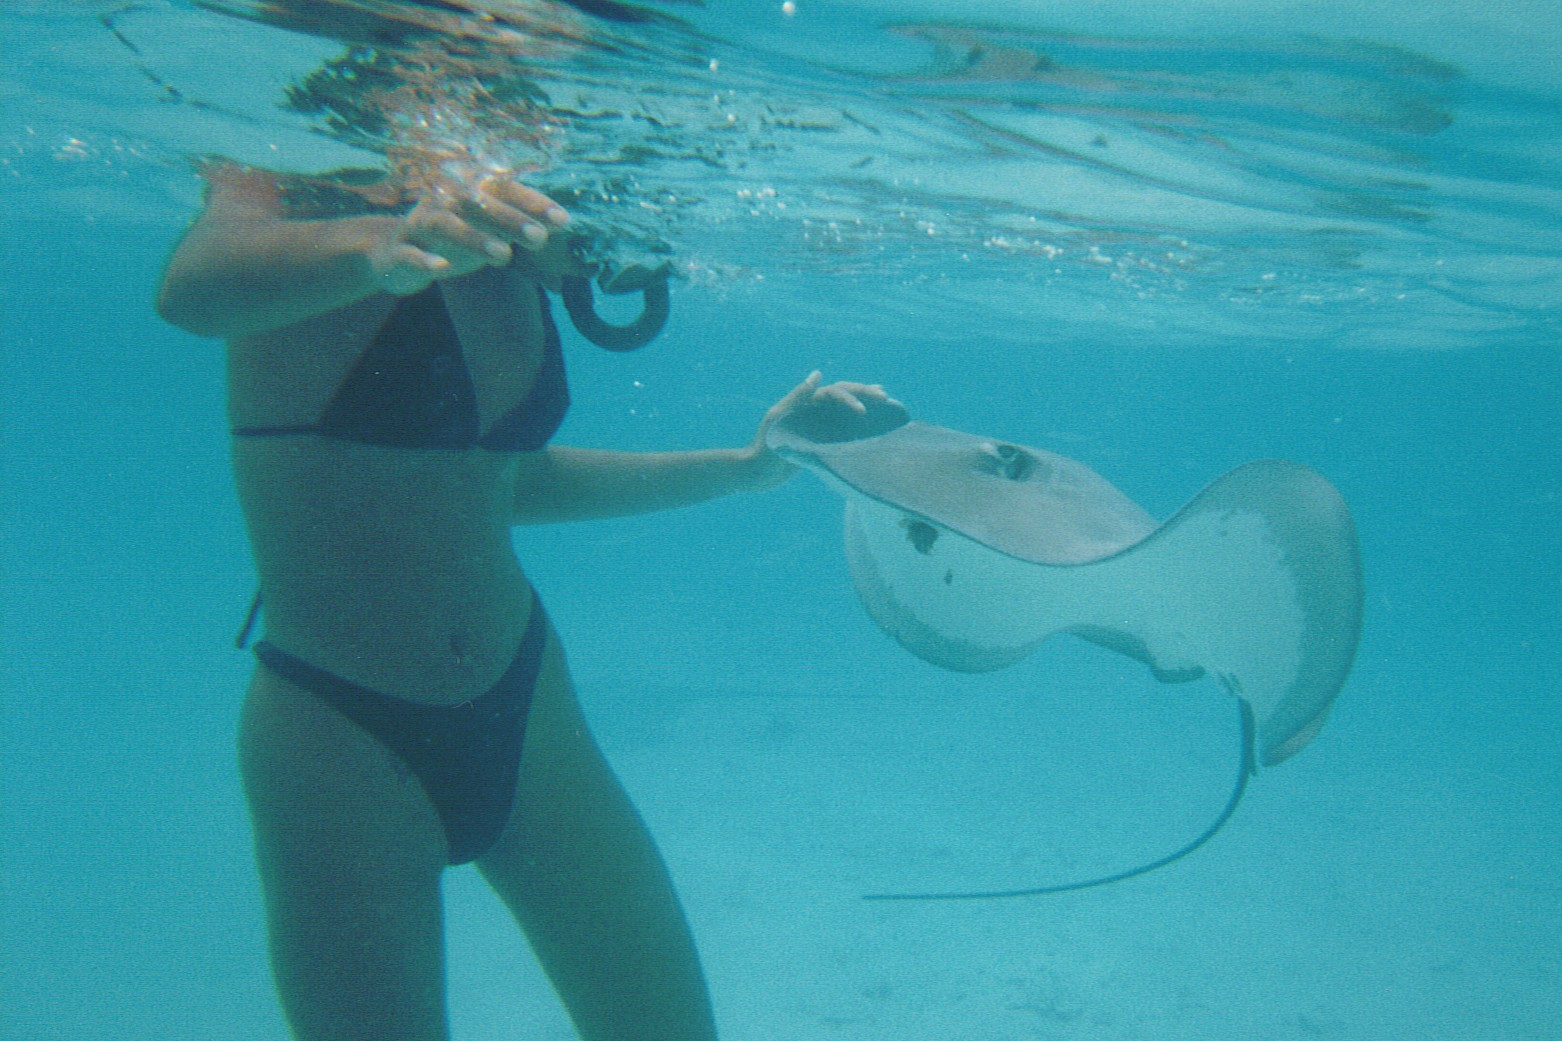 stingrays also joined us